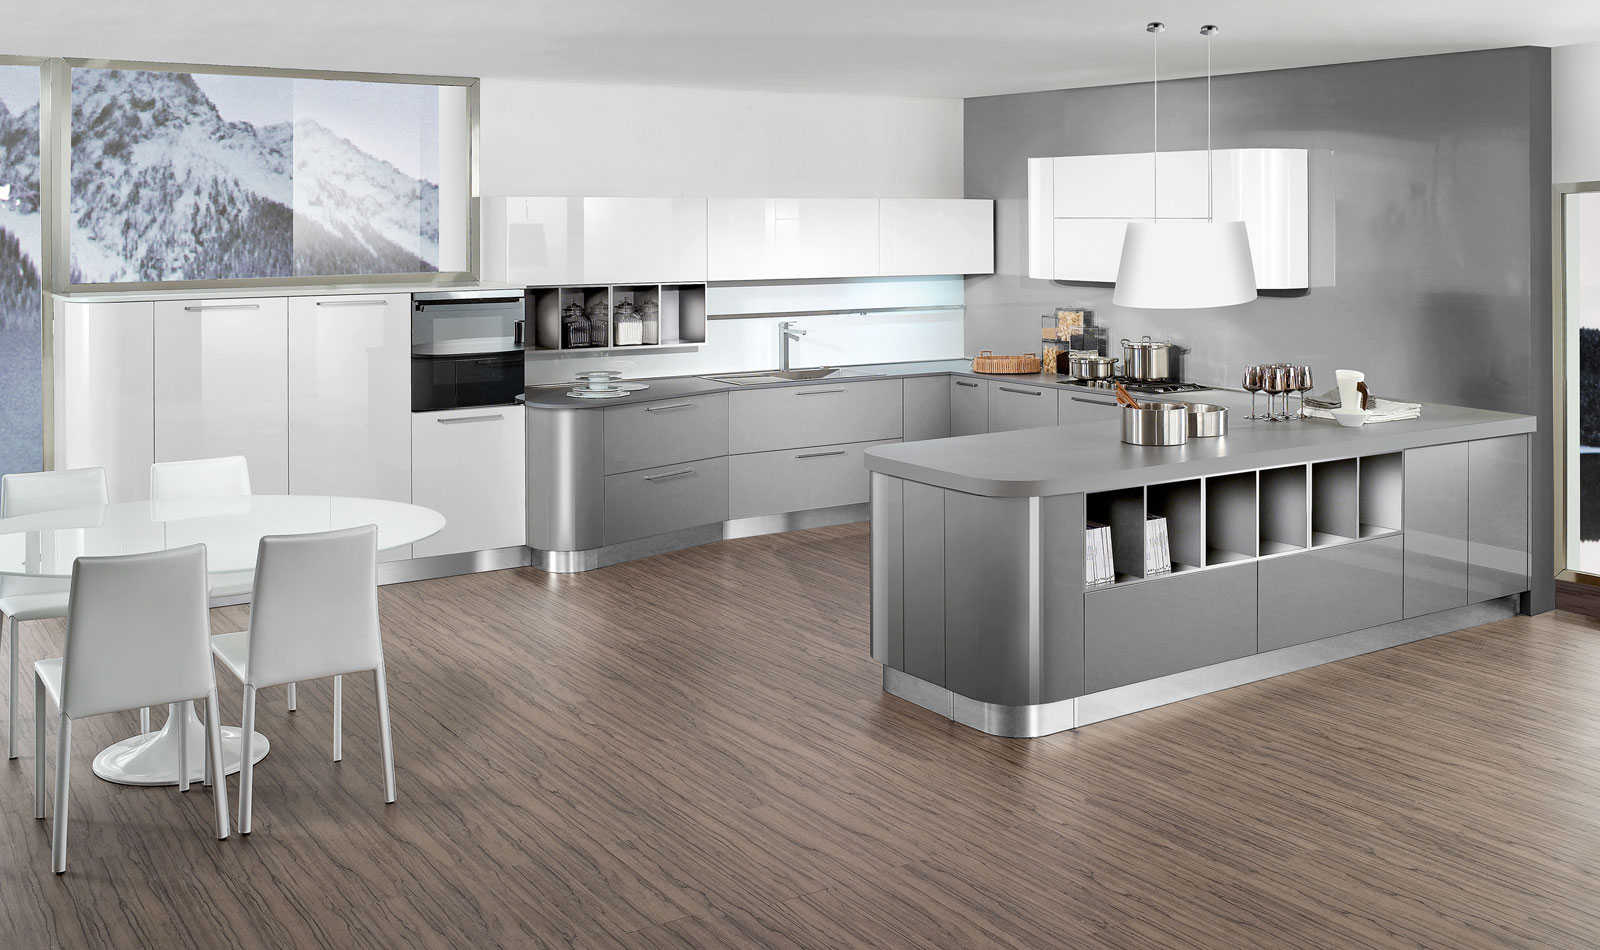 Stunning Cucine Scavolini Moderne 2014 Contemporary - Design & Ideas ...